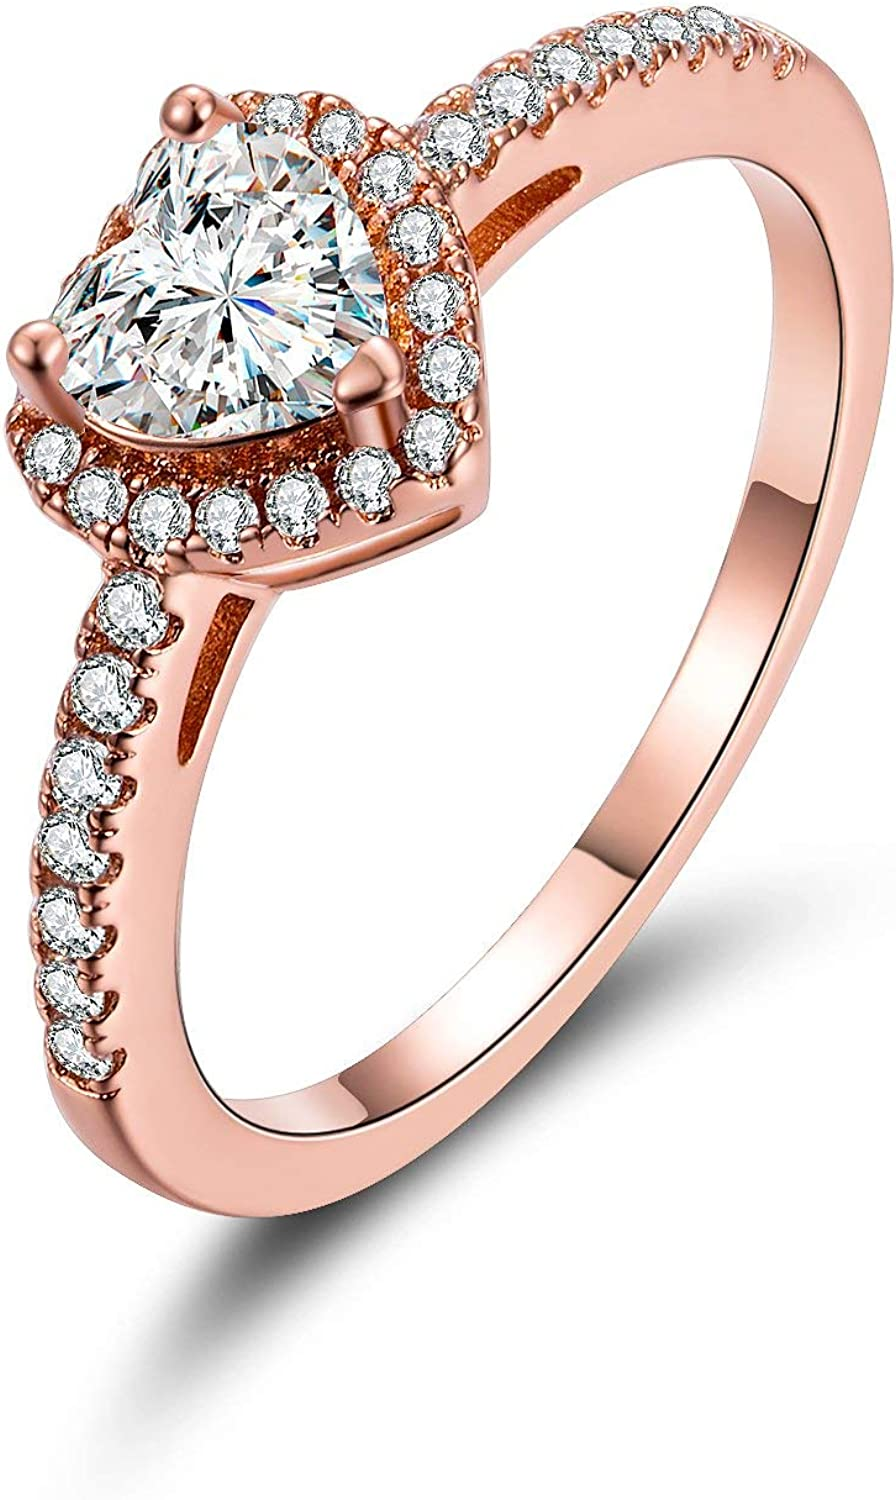 MDFUN Luxurious 18k Gold Plated Cubic Zirconia Wedding Engagement Rings Eternity Bridal Band Halo Rings